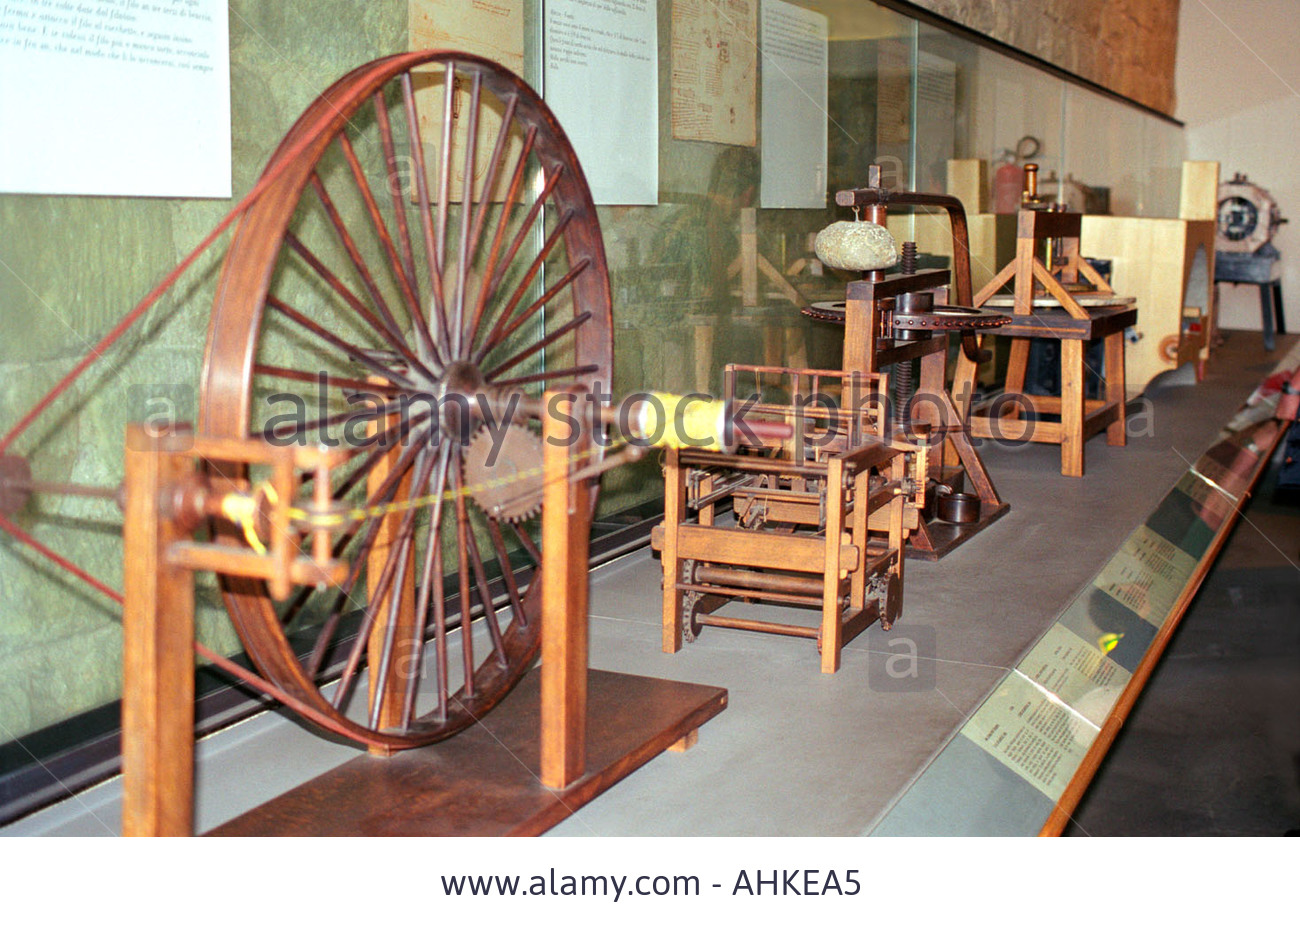 inventions-by-leonardo-da-vinci-at-the-museum-in-vinci-tuscany-italy-AHKEA5